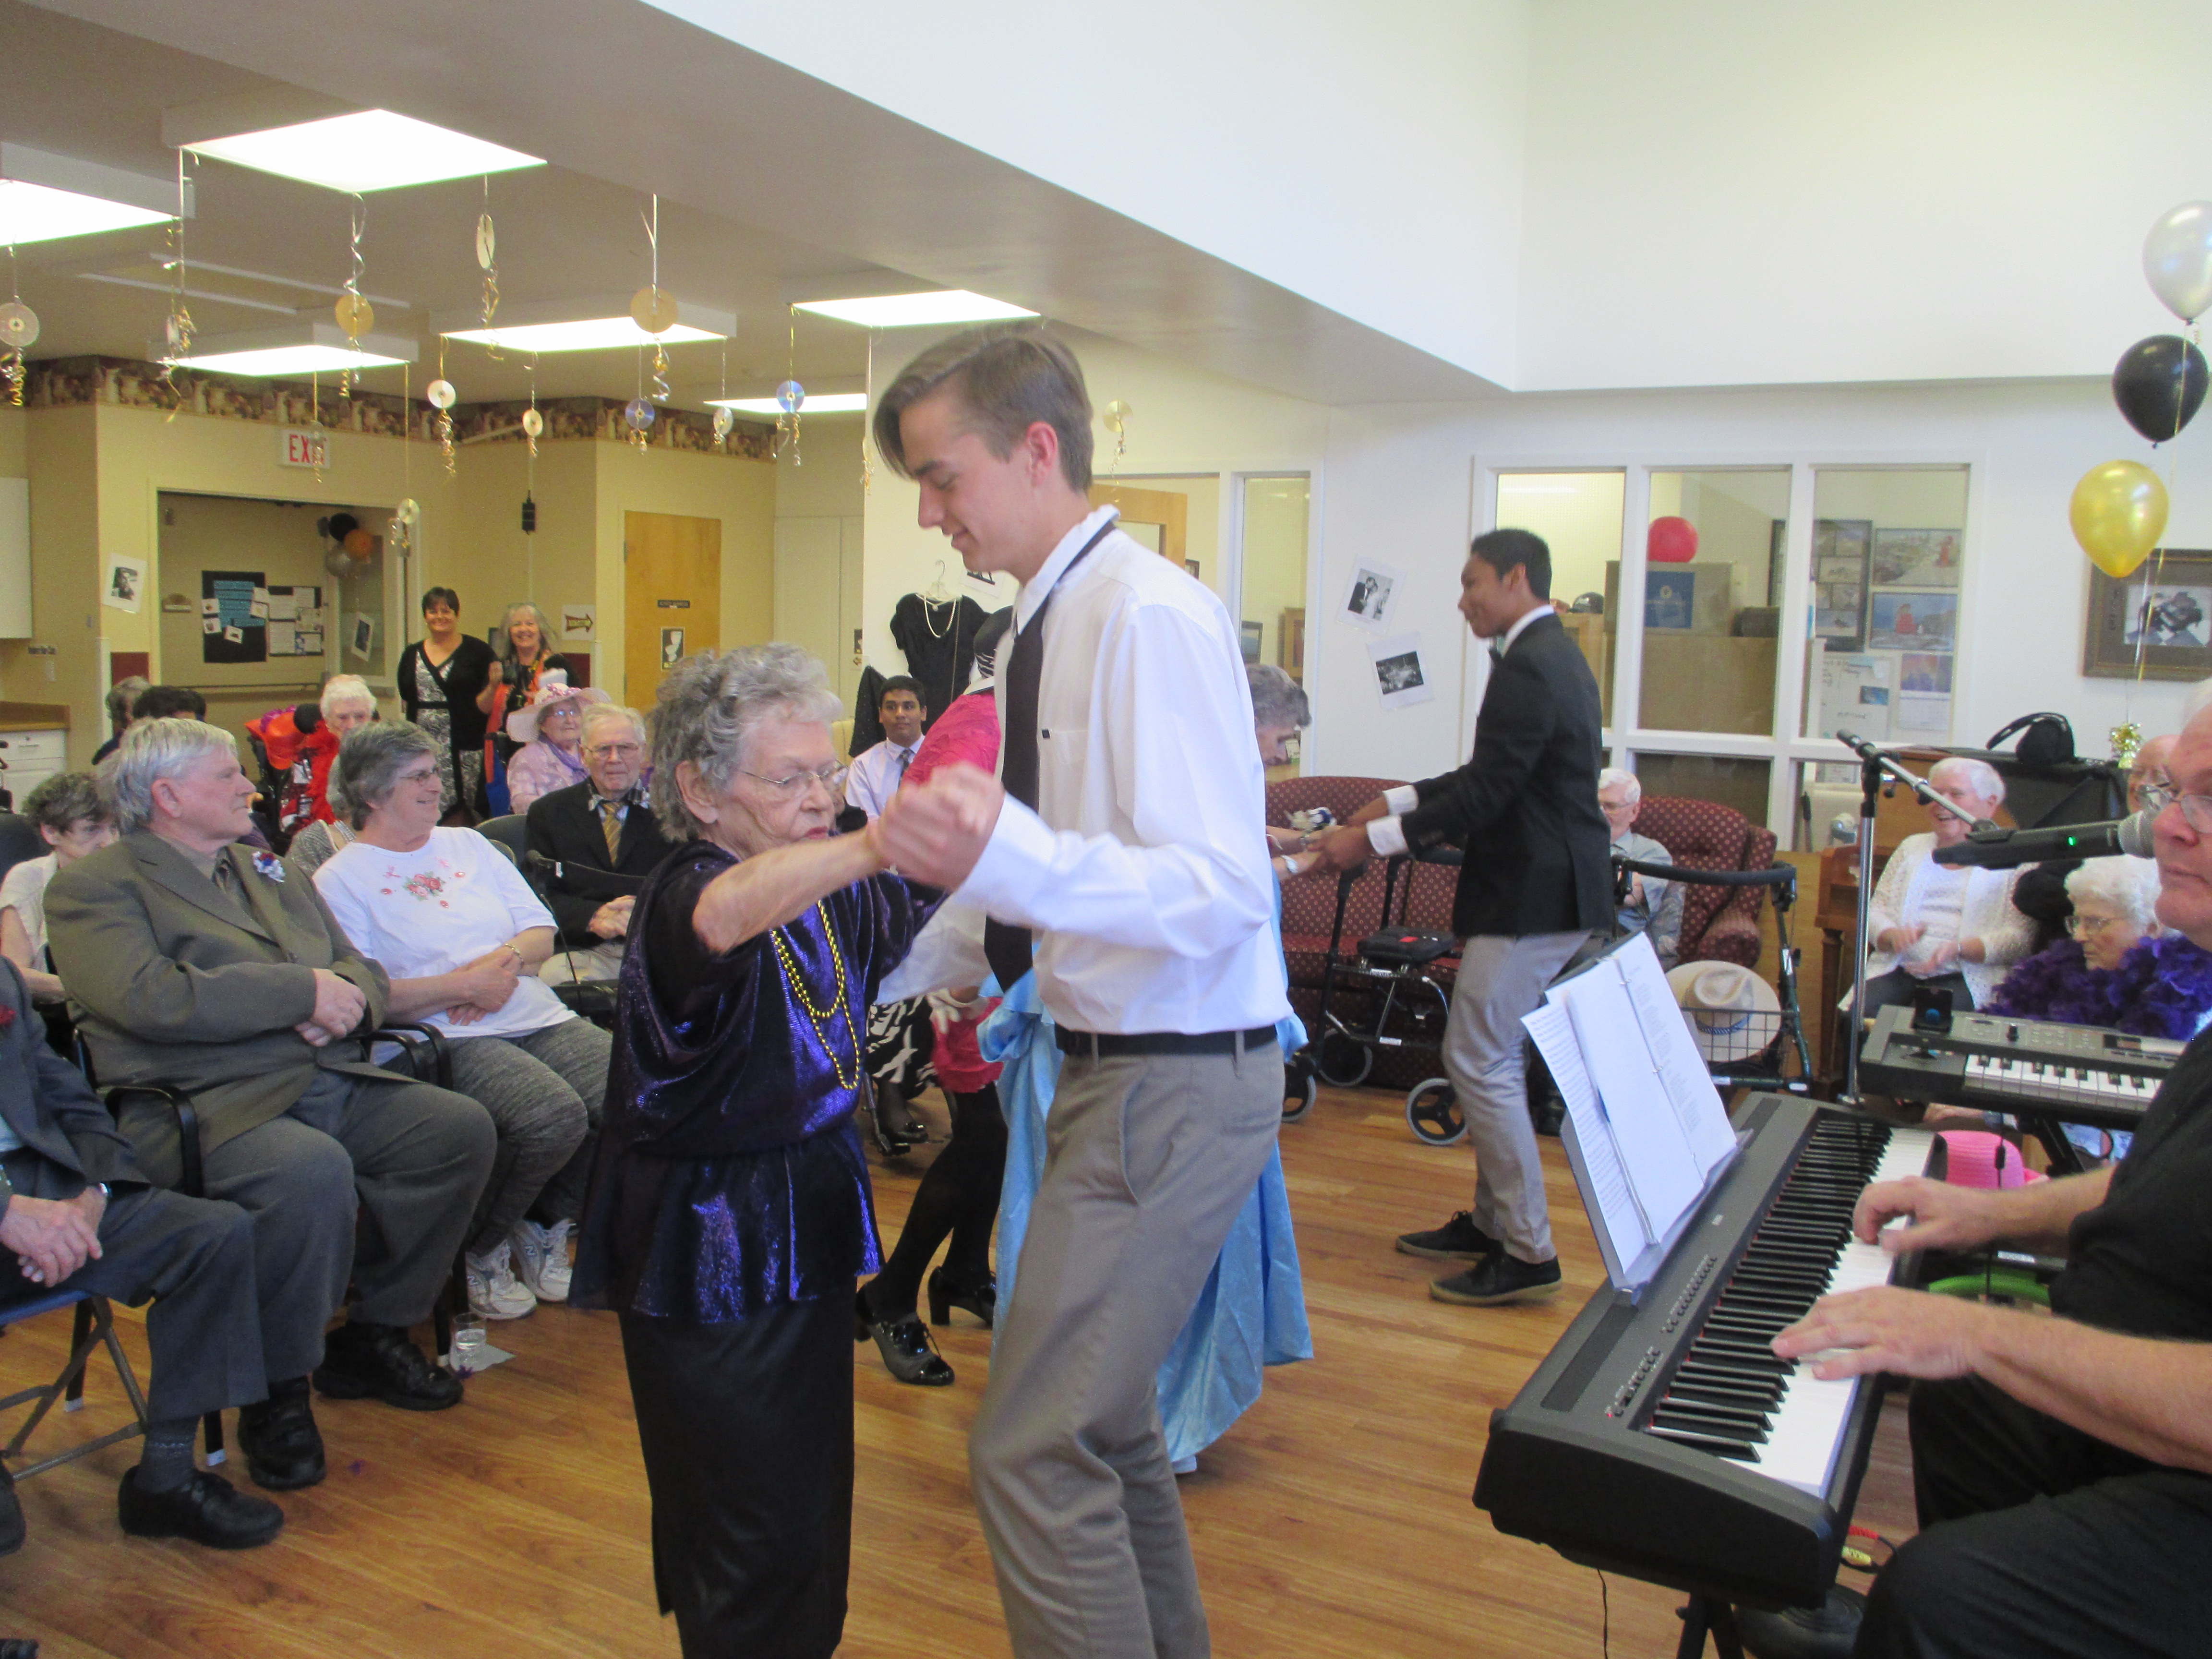 Southampton Care Centre resident Audrey W dances with one of the high school students at her 'Senior Prom,' while other residents look on and enjoy the music